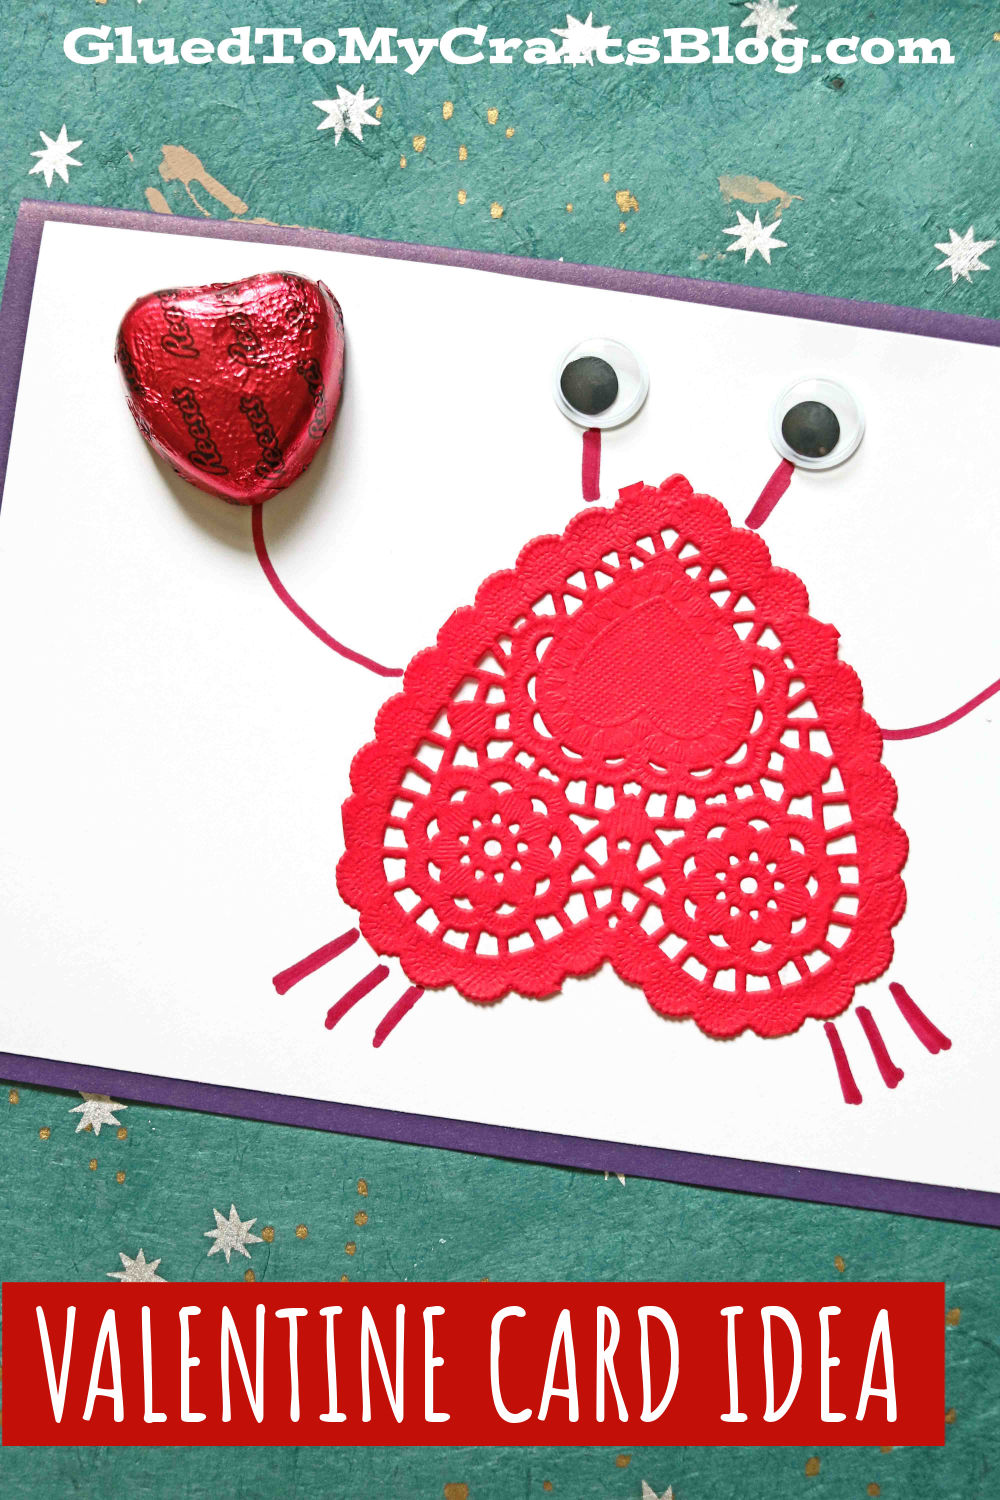 Heart Doily Crab Valentine Card Idea For Kids To Recreate